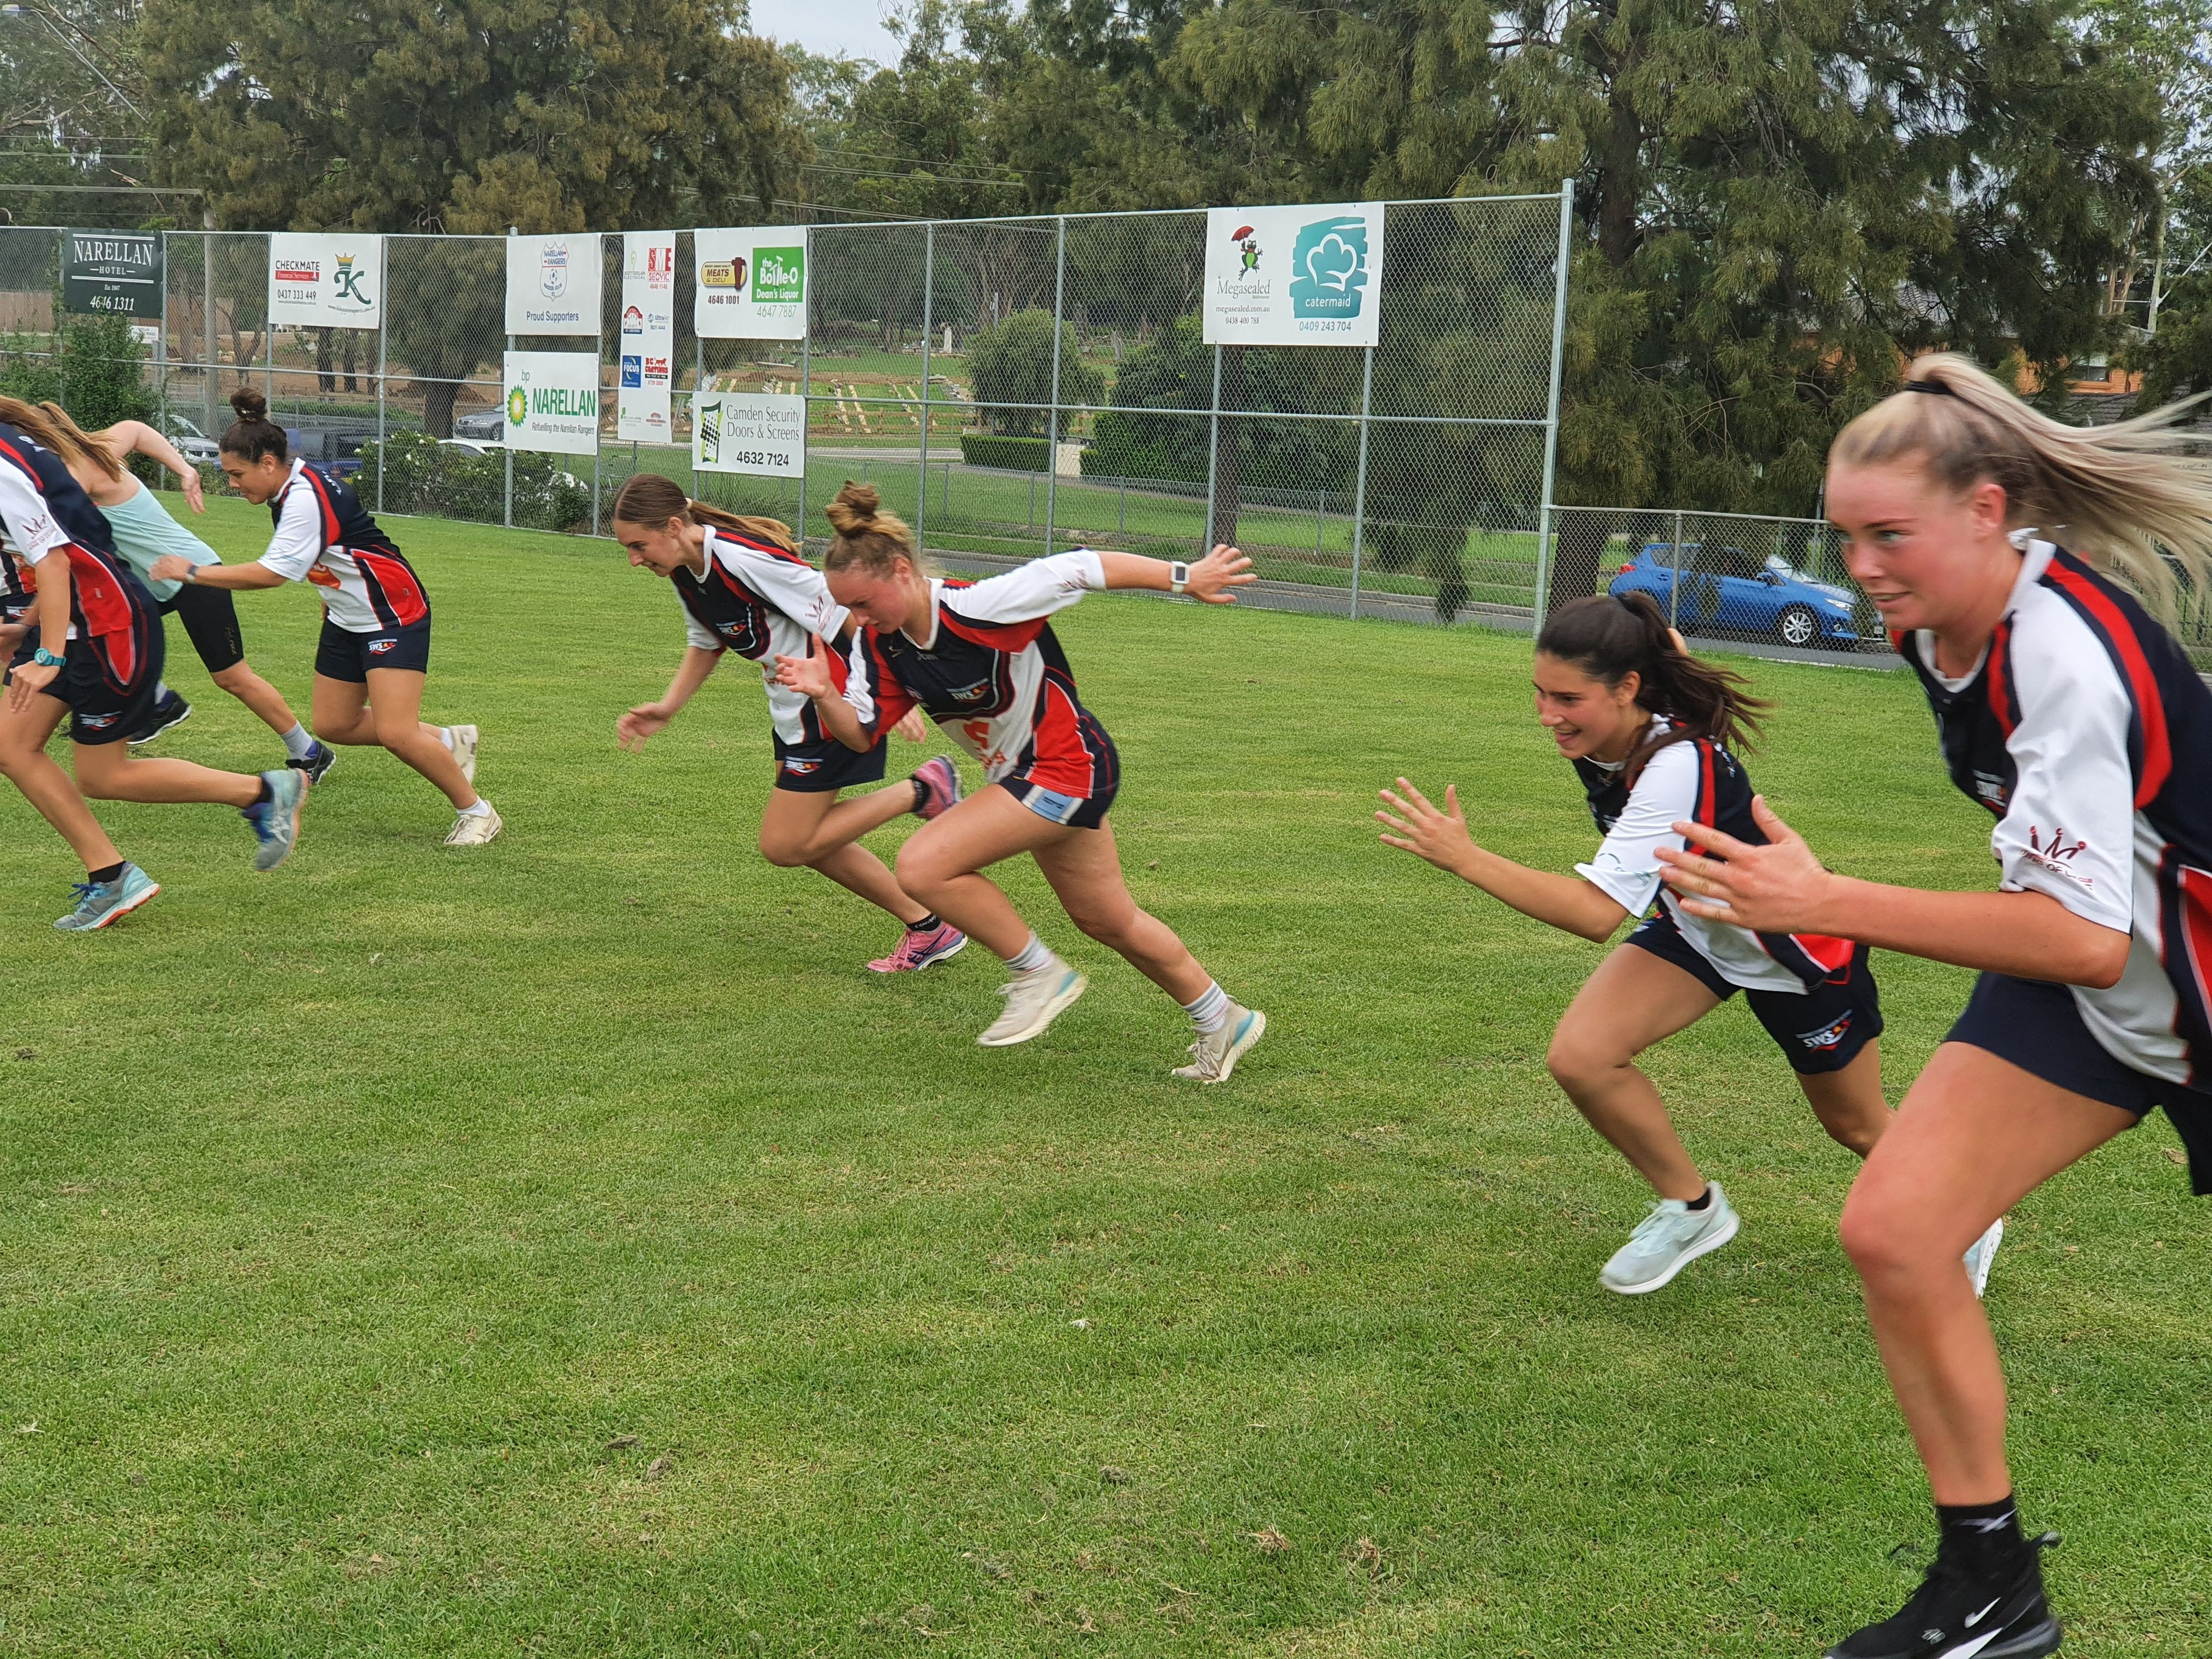 South West Sydney Academy of Sport AFL Female Talent Pathway Program